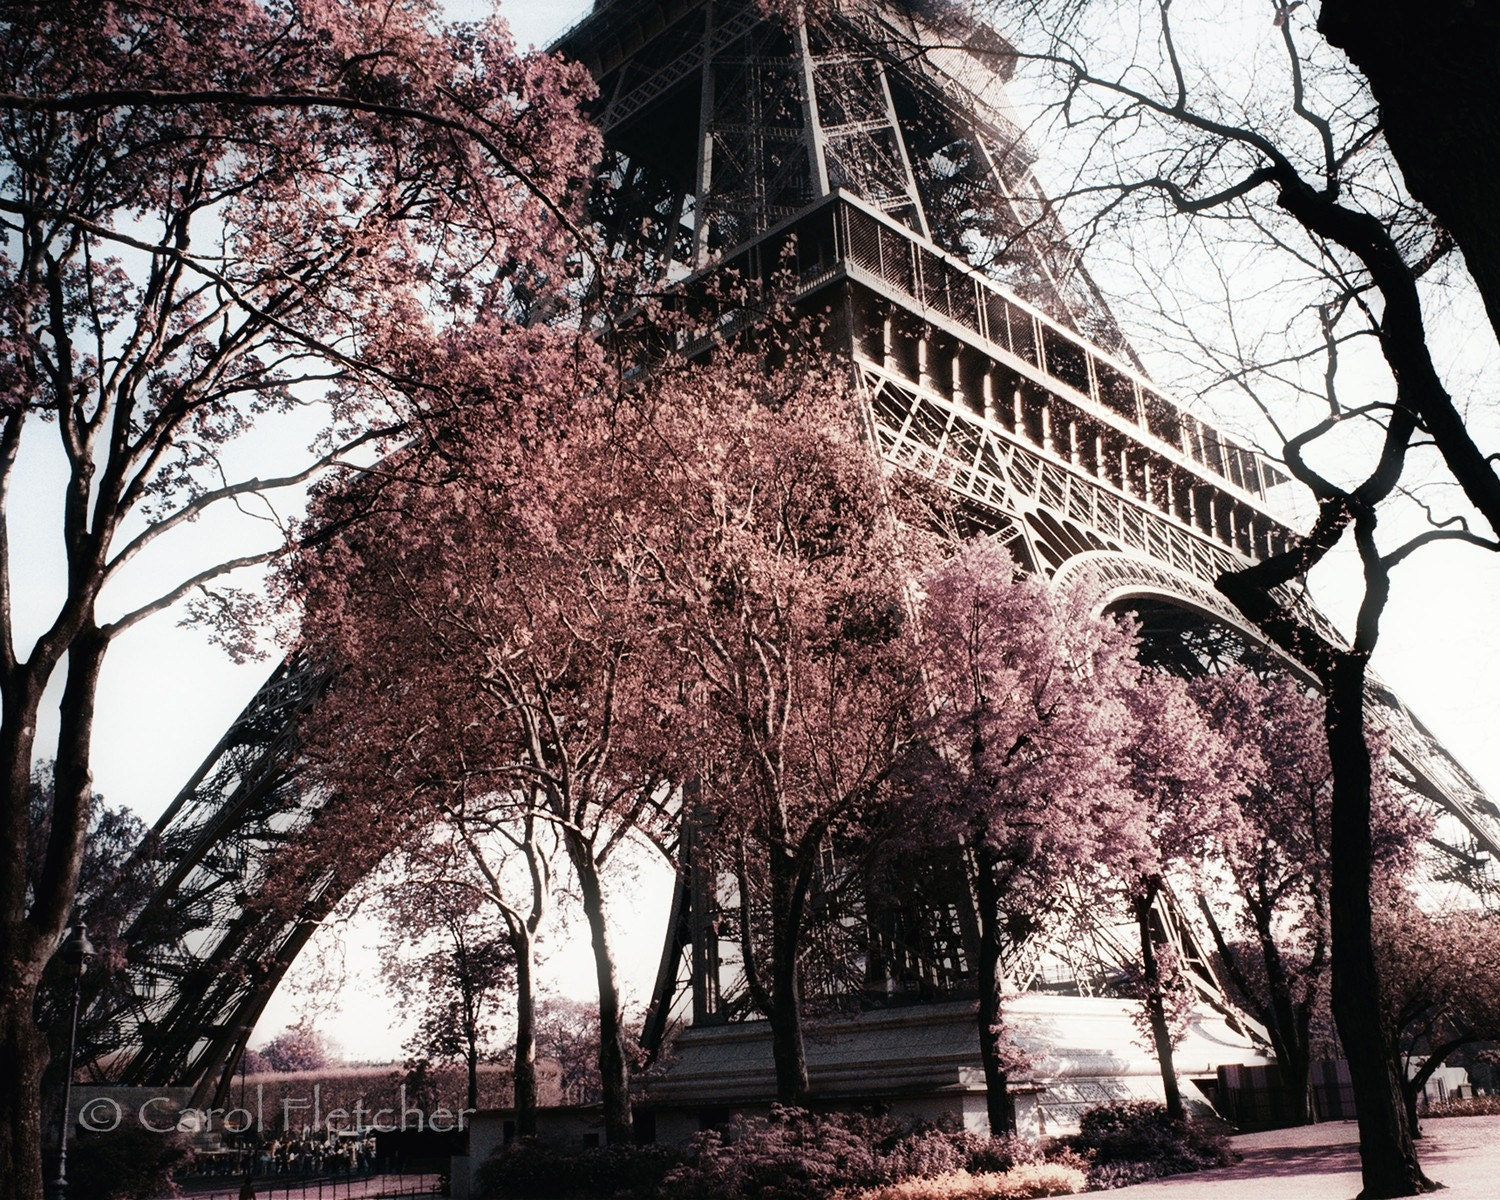 Paris in the Spring by Carol Fletcher